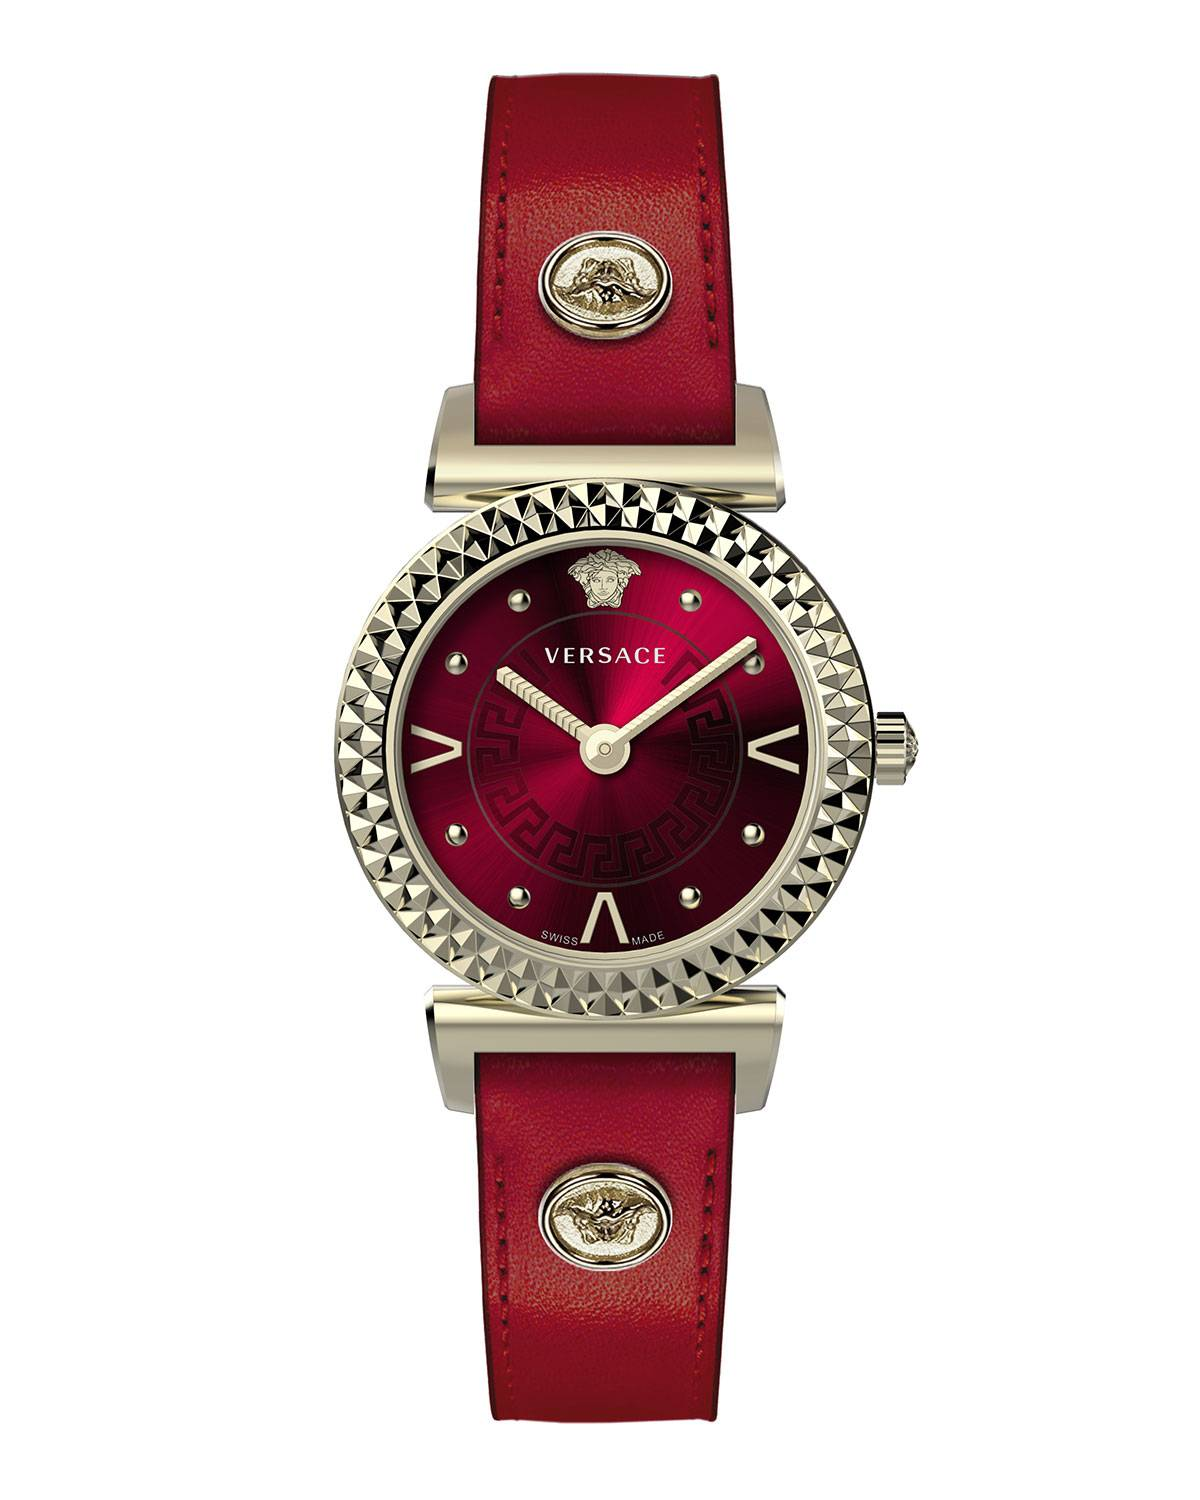 Versace Mini Vanity Watch w/ Leather Strap, Gold/Red